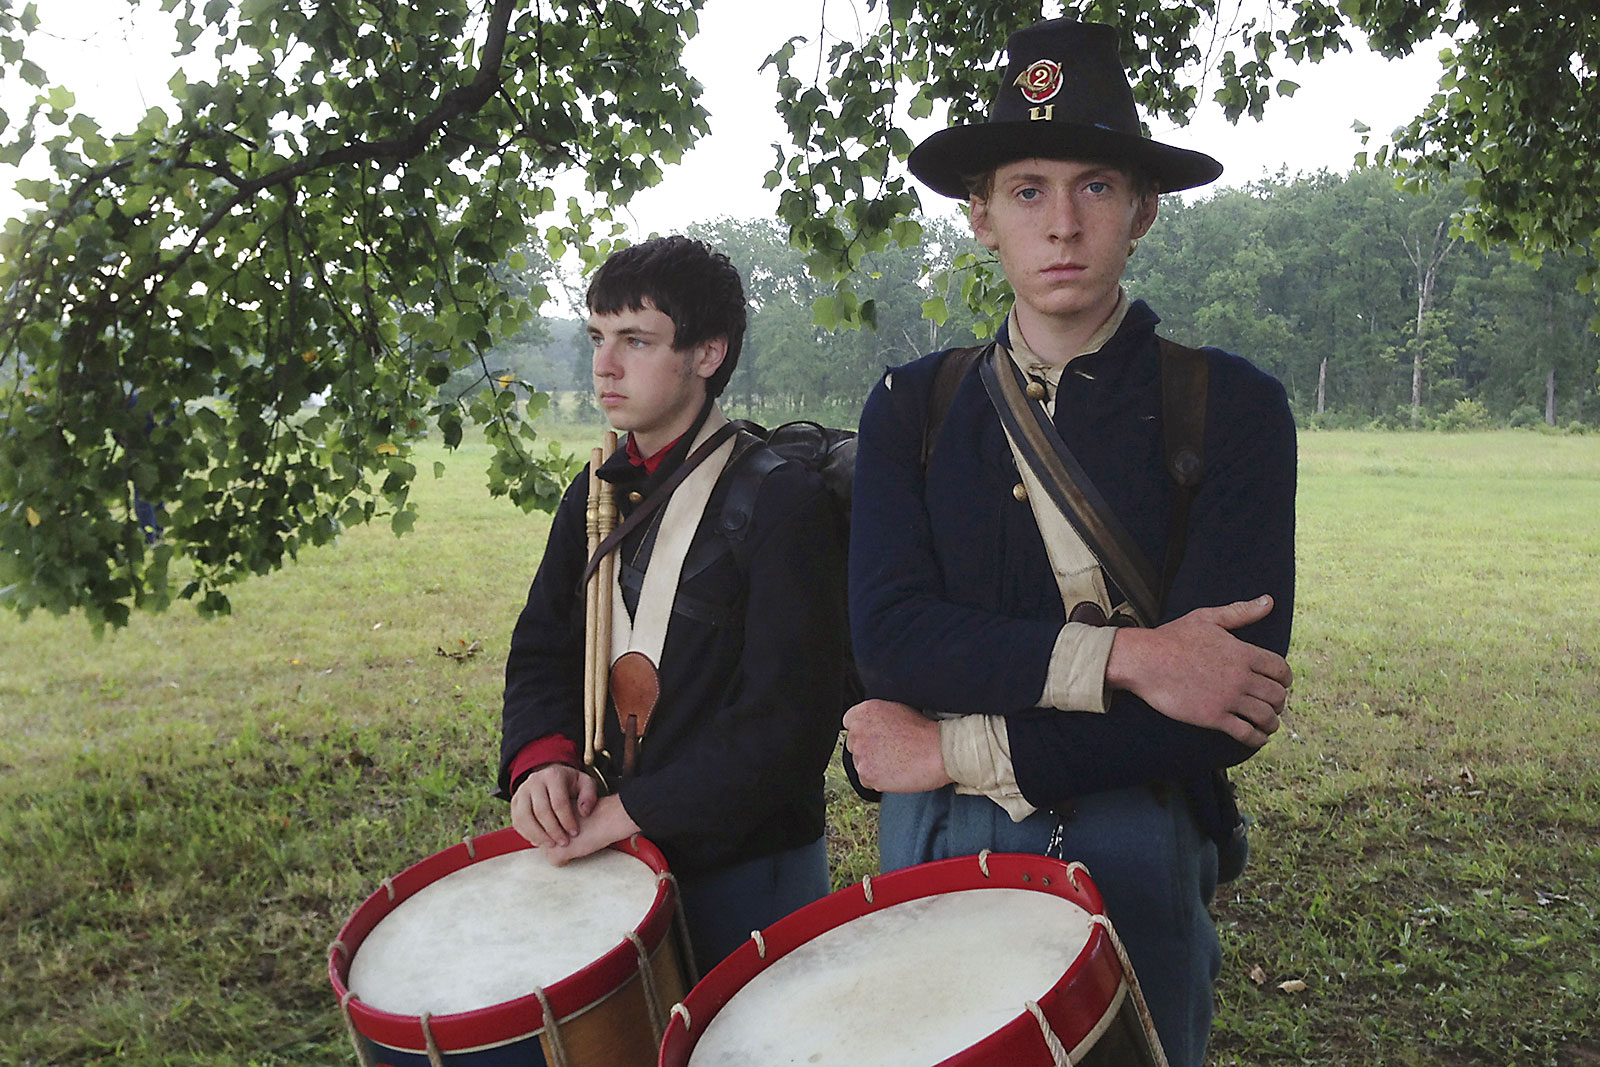 Two members of a drum and fife corps stand ready to play during a living history demonstrations at Gettysburg National Military Park.